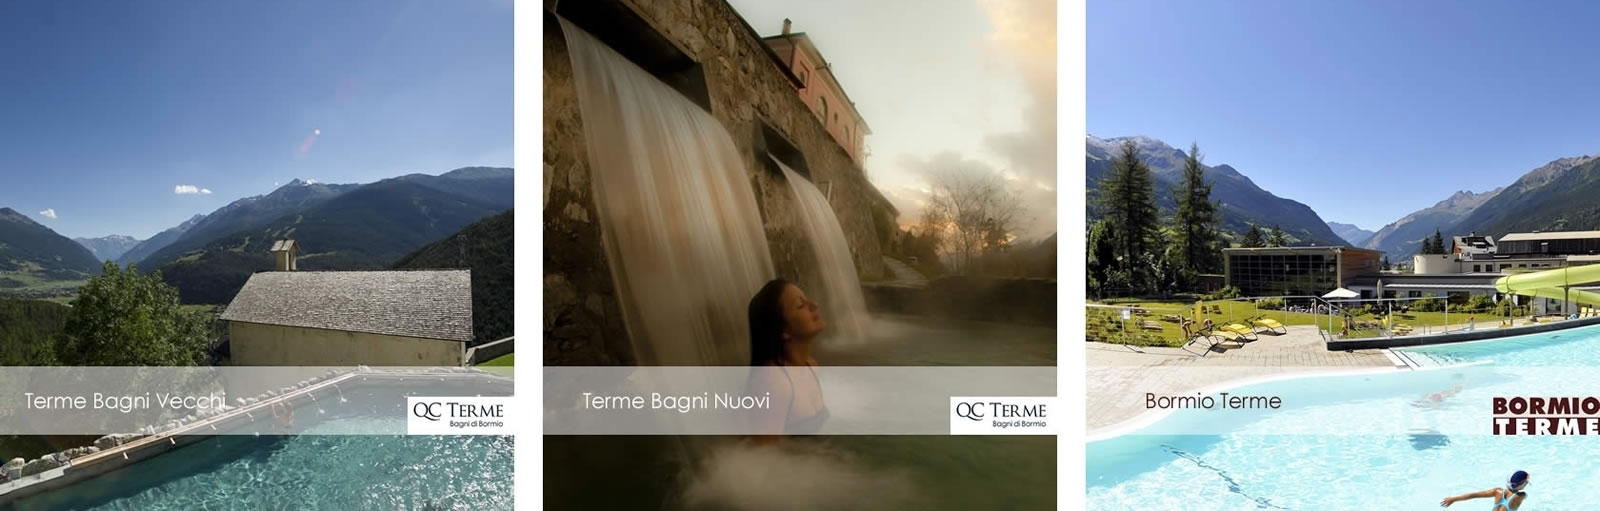 http://www.cimabianca.it/media/menu/00/265/cd/de/images/terme-c-1600x511-0-c-1600x511-0.jpg